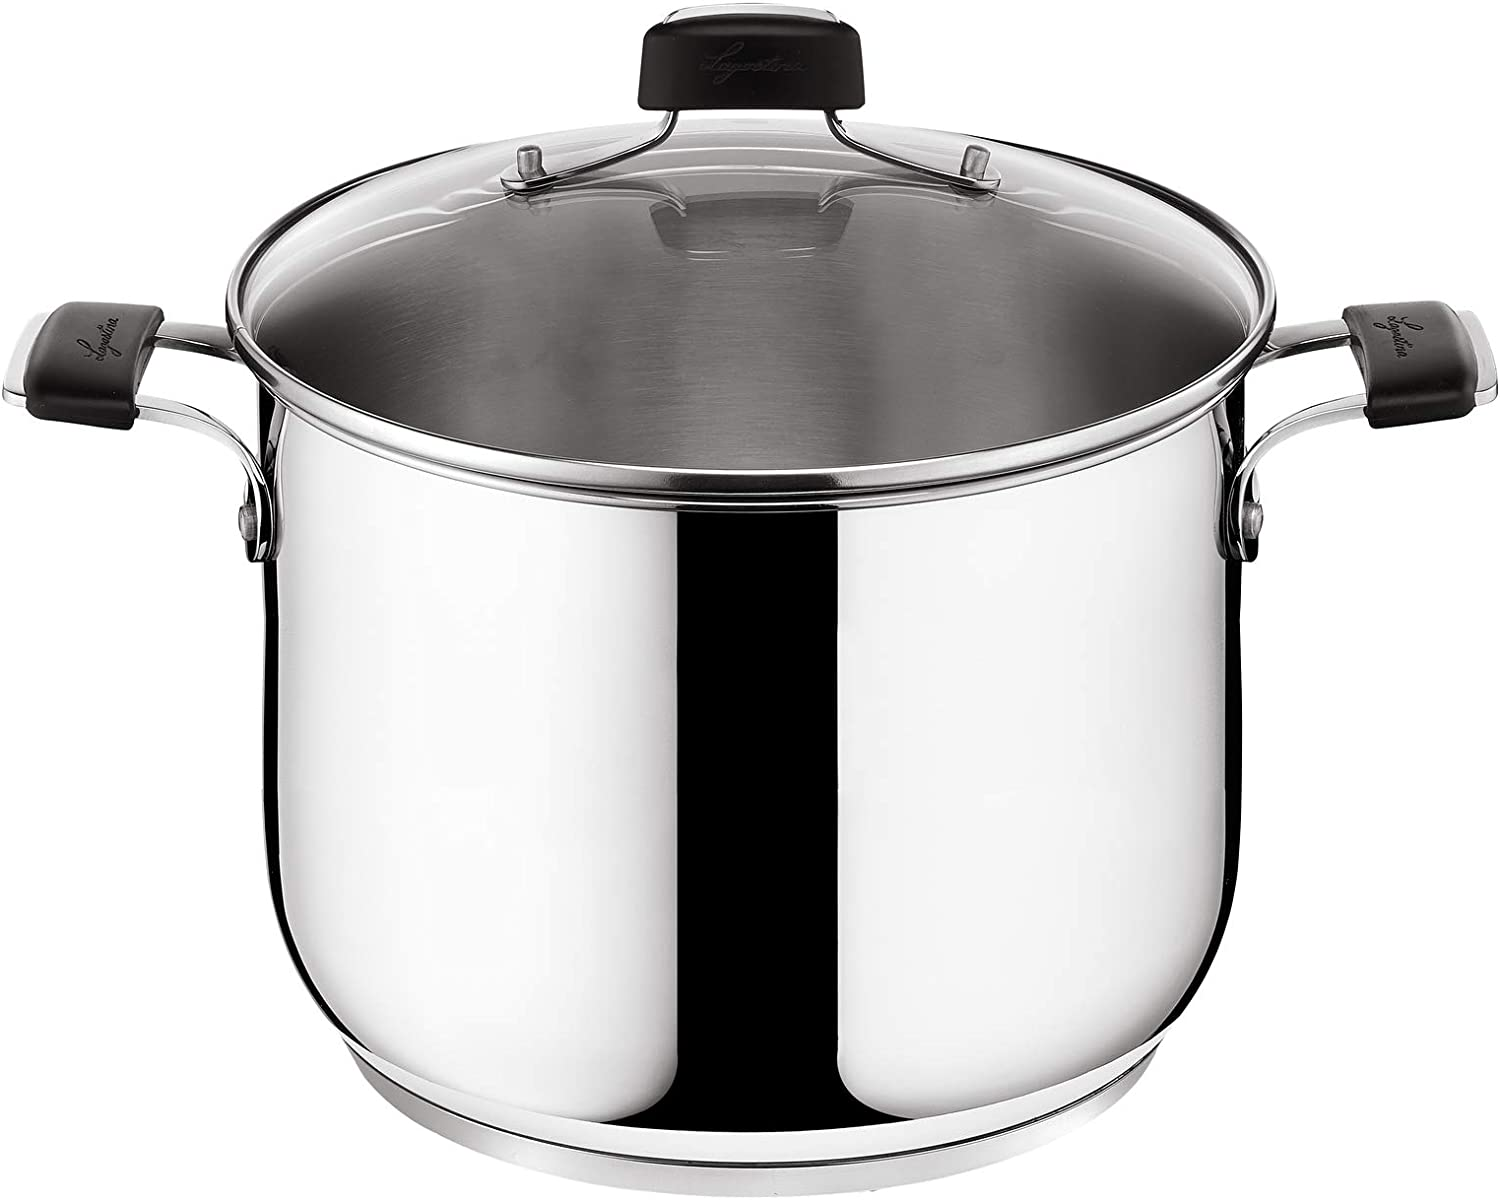 Lagostina Tempra LAGTEIT24 Cooking Pot 24 cm Steel Fashion Stainless Sale Special Price -